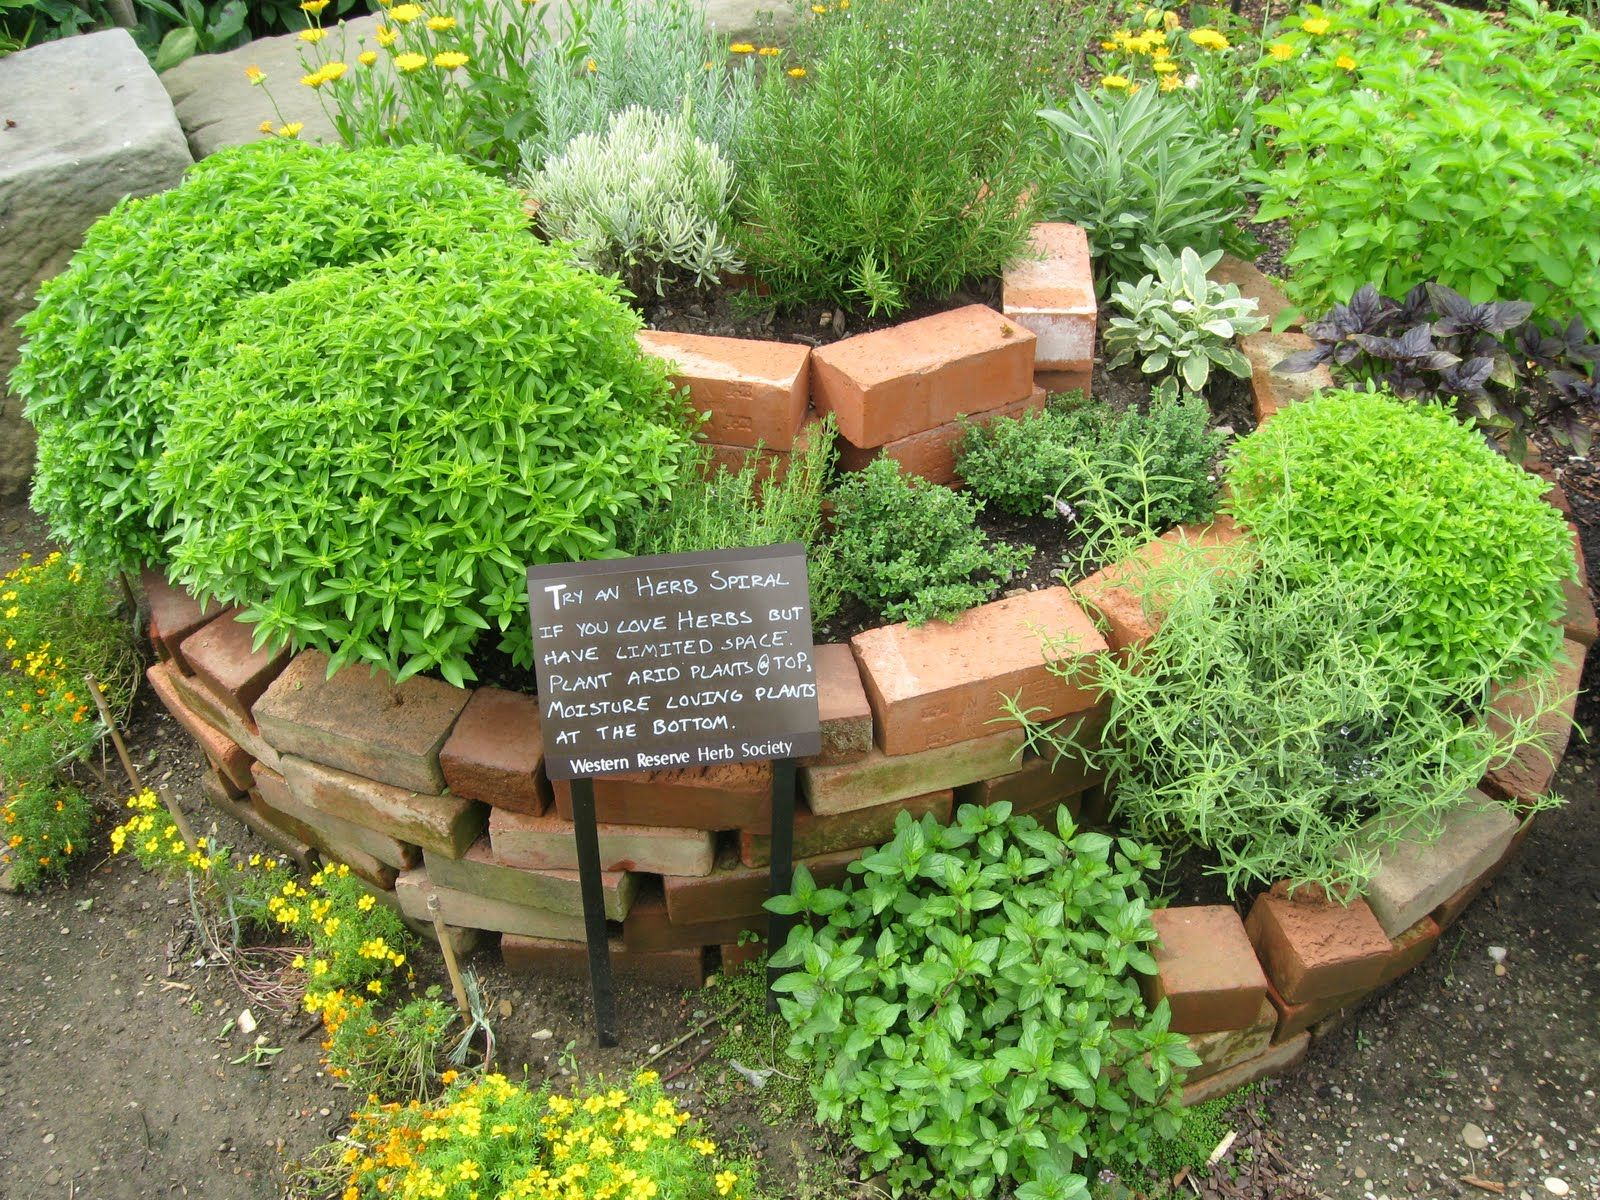 this herb garden design brings creativity and usefulness to the